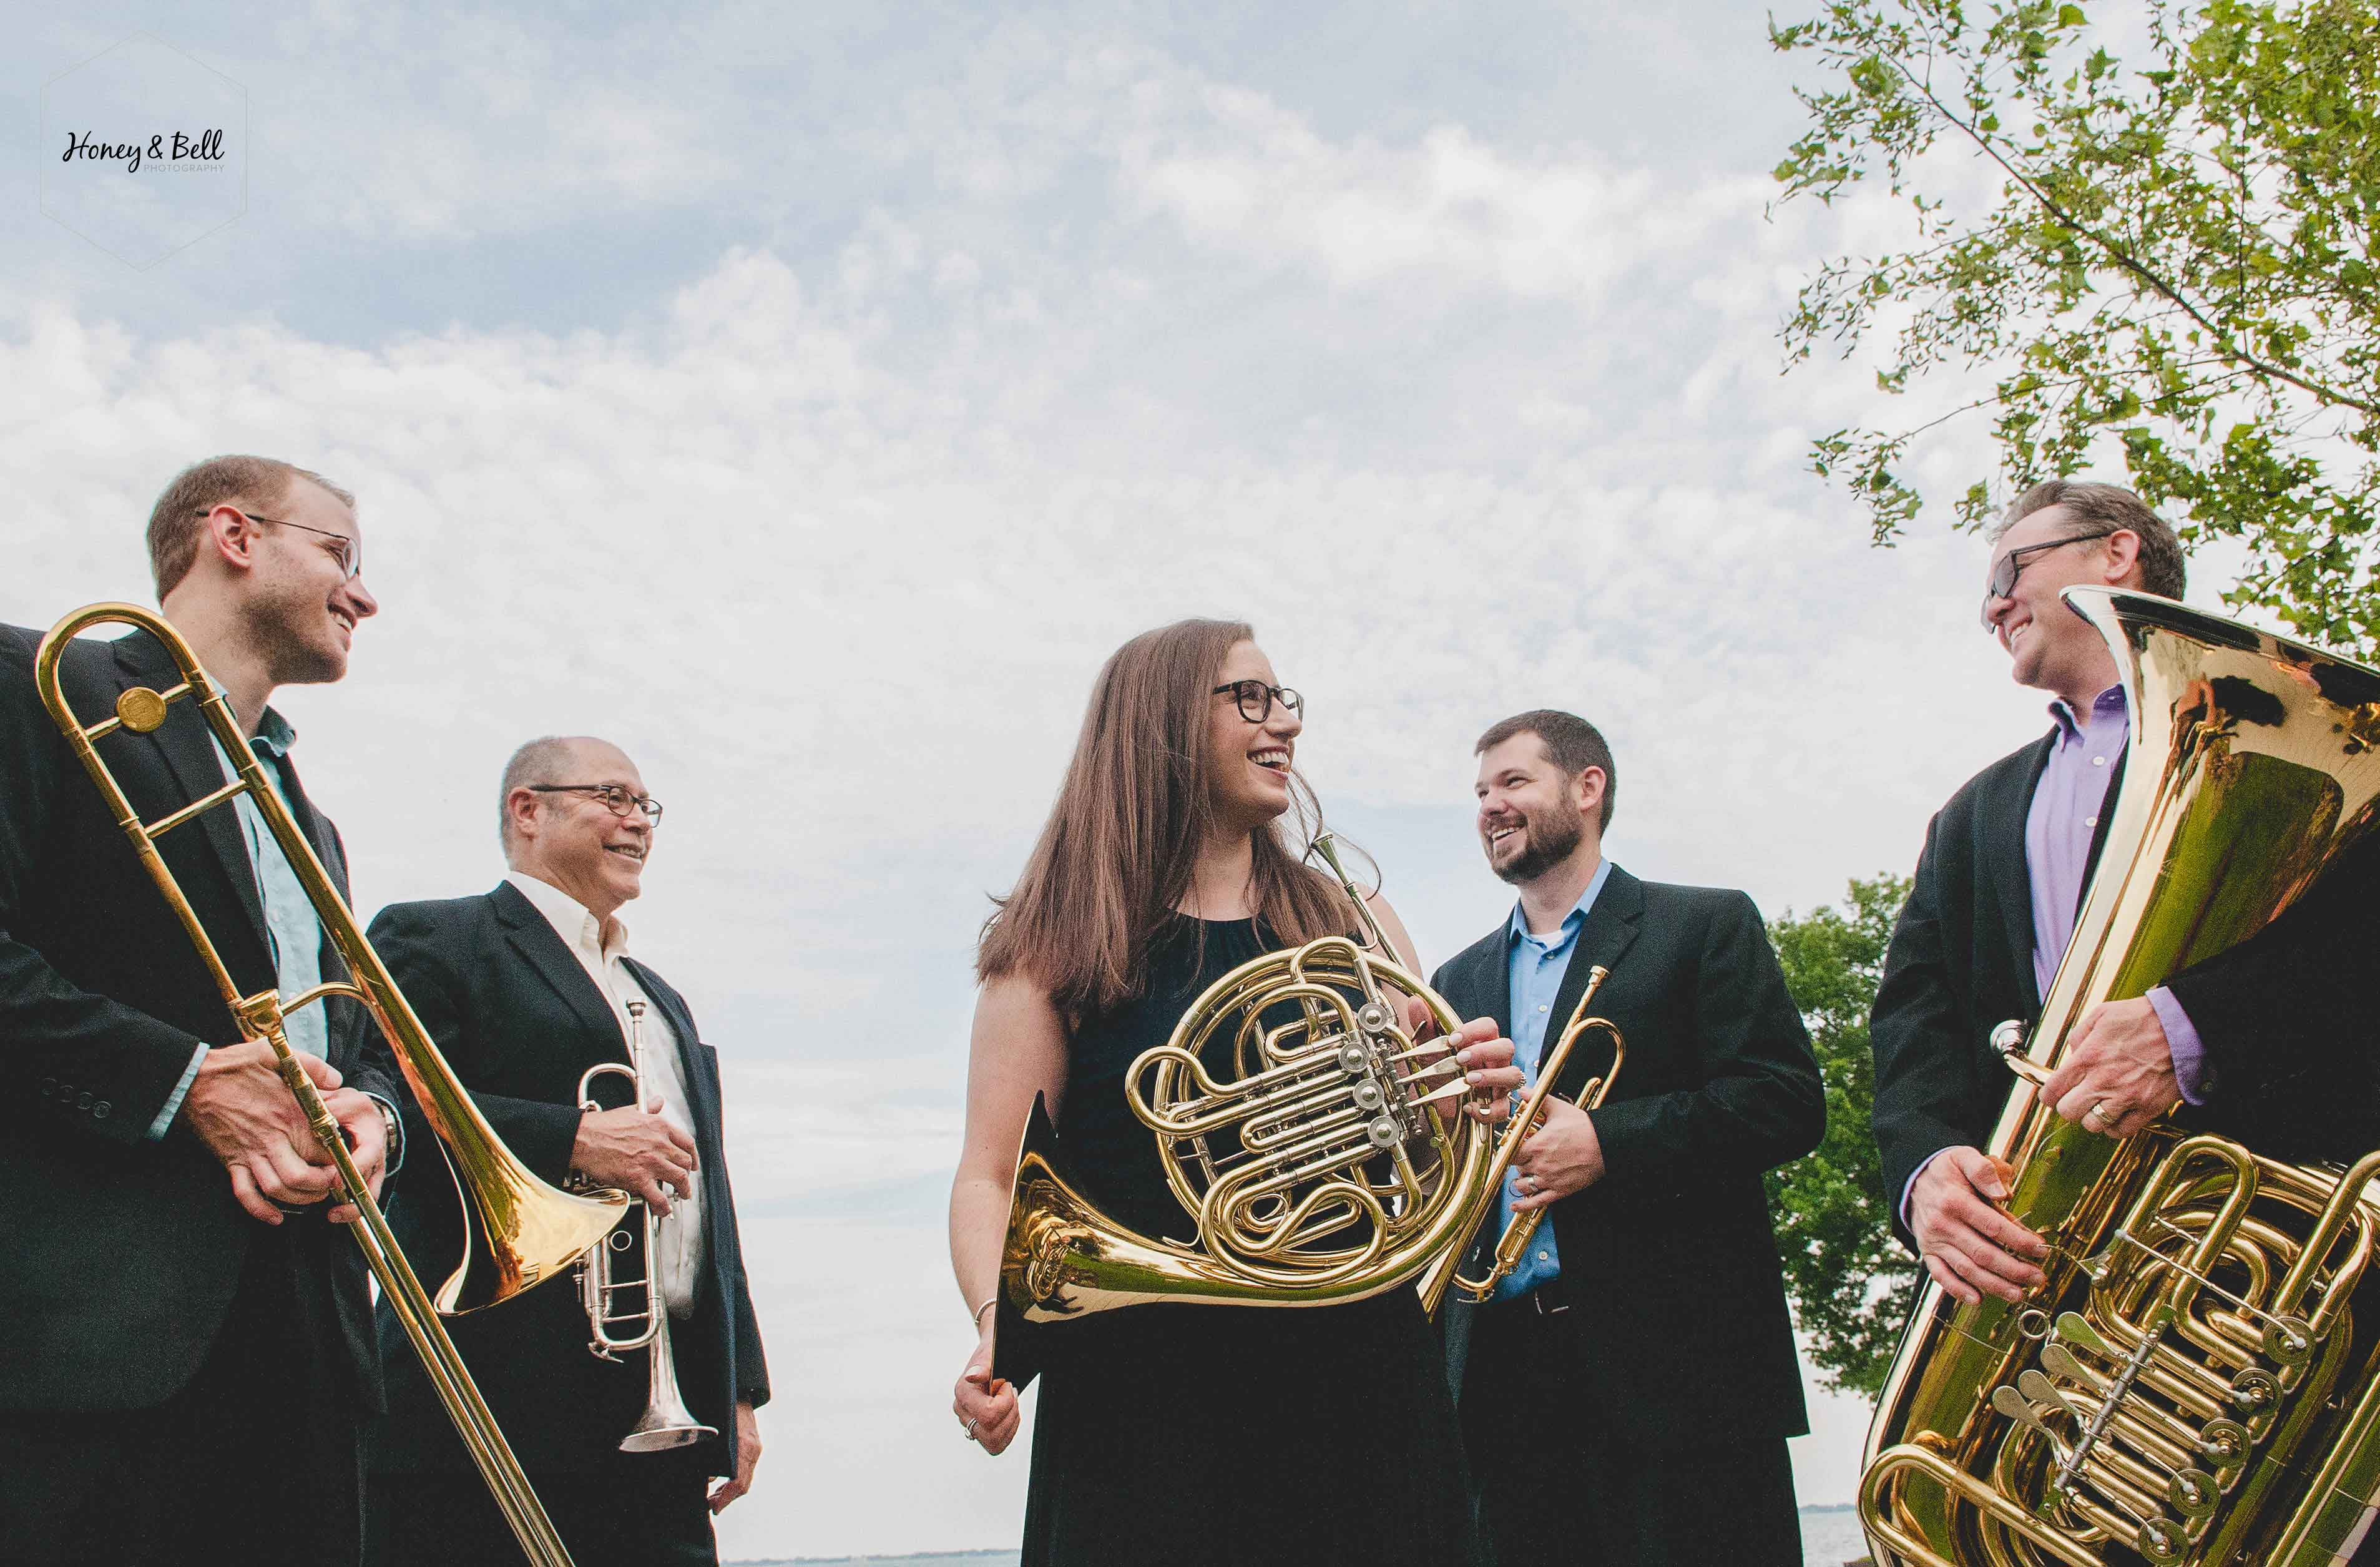 north-of-canada-brass-quintet-detroit-michigan-grosse-pointe-band-photographer-01